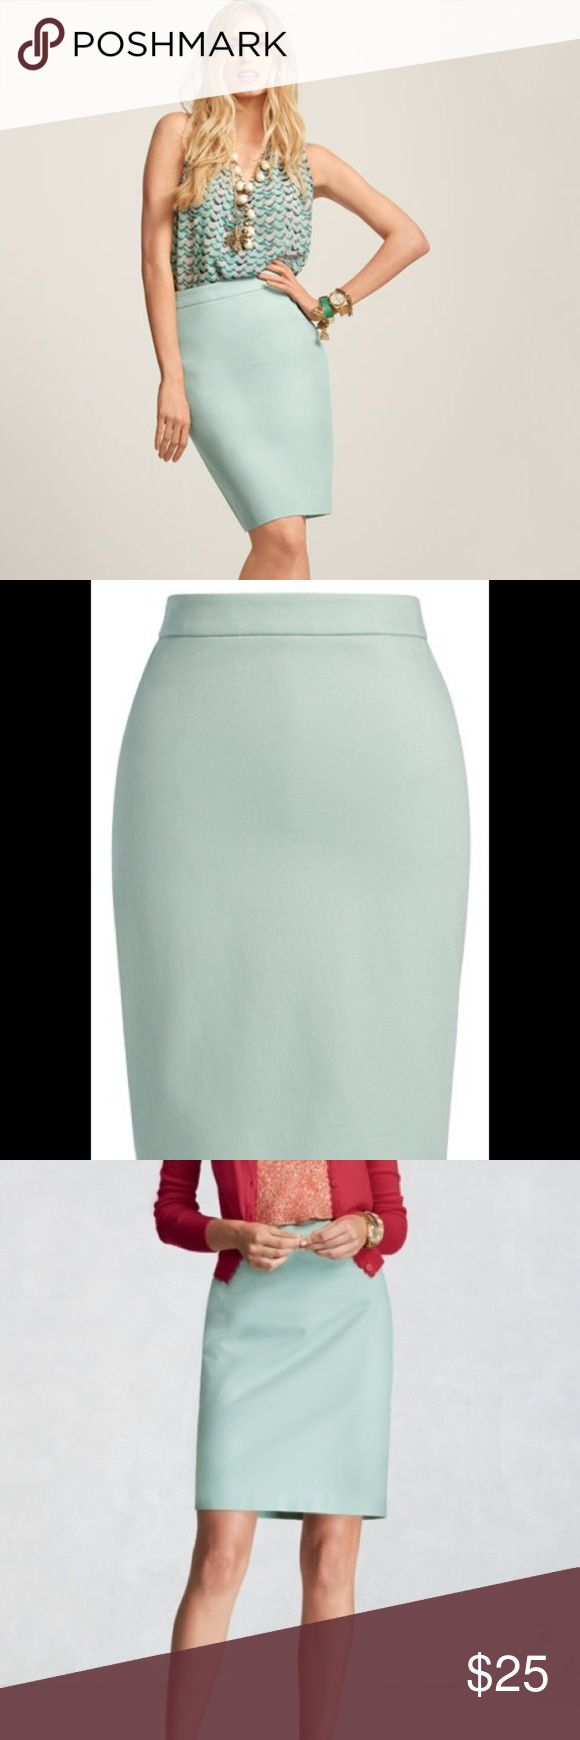 CAbi New Pencil Skirt in Almond #360 NEW Sz 0 CAbi New Pencil Skirt in Jordan Almond.  Brand New and in Excellent Condition!  Zip-up back and bottom slit.  98% Cotton and 2% Spandex - Size 0 CAbi Skirts Pencil